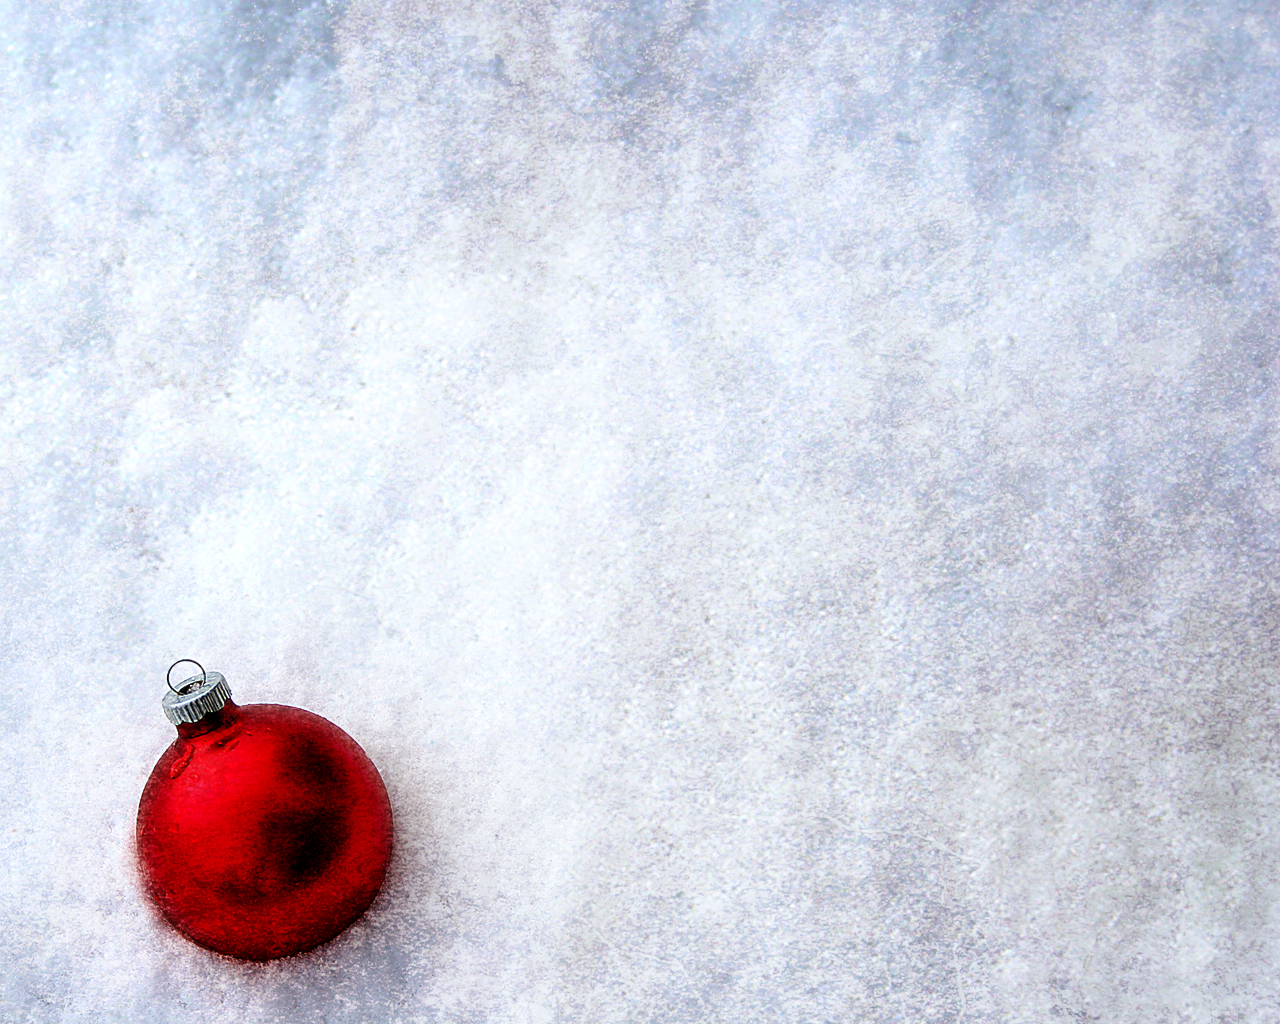 Christmas desktop backgrounds to celebrate the holidays - Free christmas images for desktop wallpaper ...